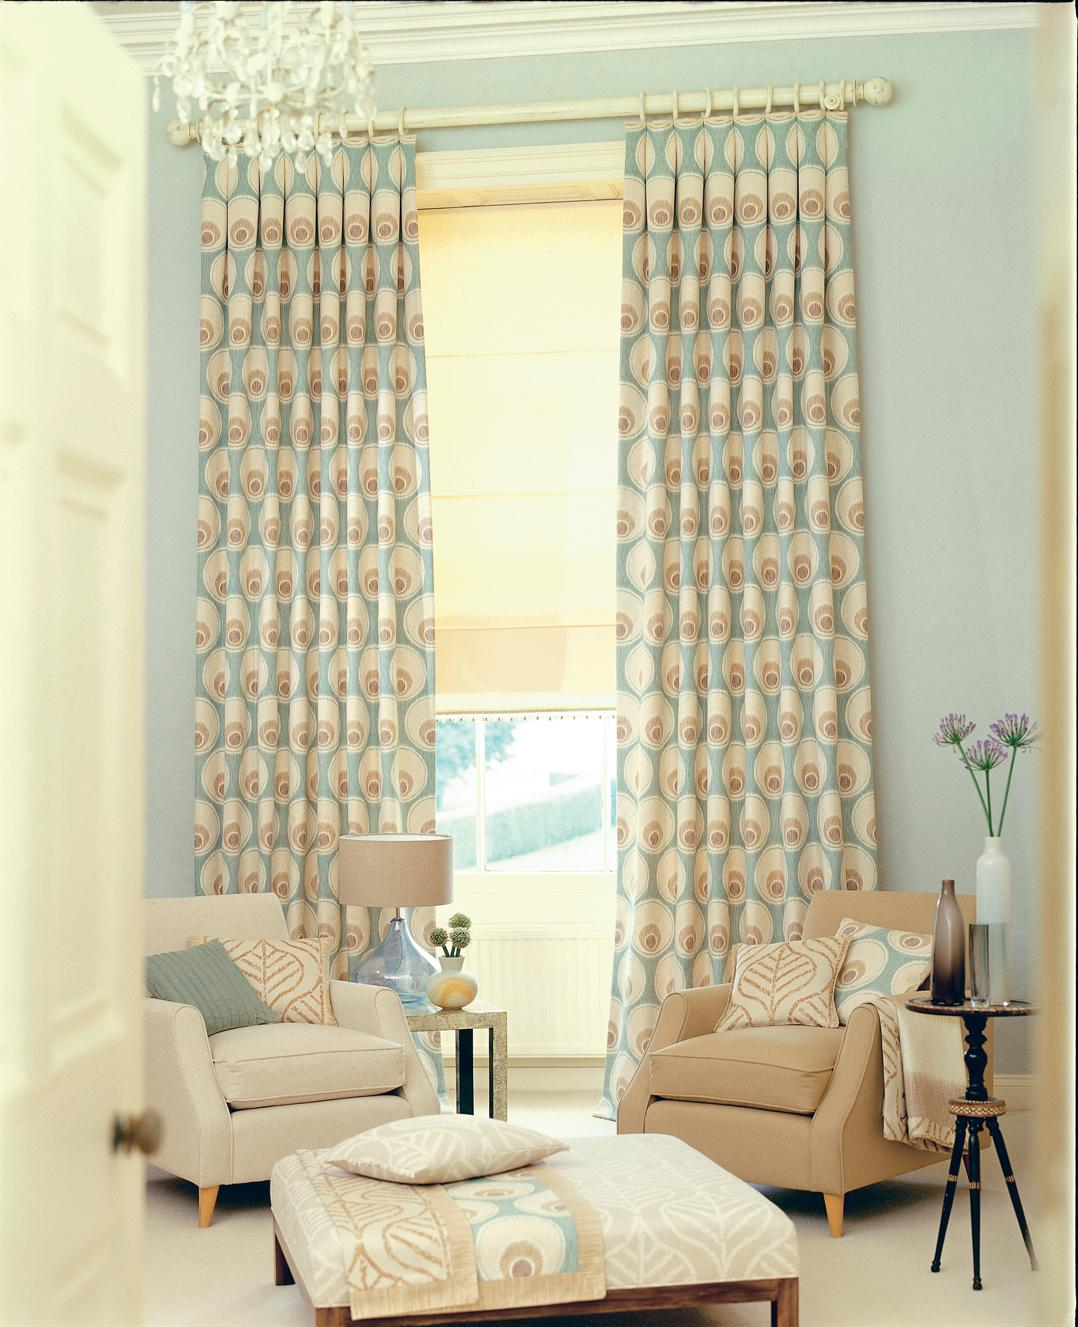 Home Design Ideas Curtains: Curtain Designs For Windows In Changing The Atmosphere Of